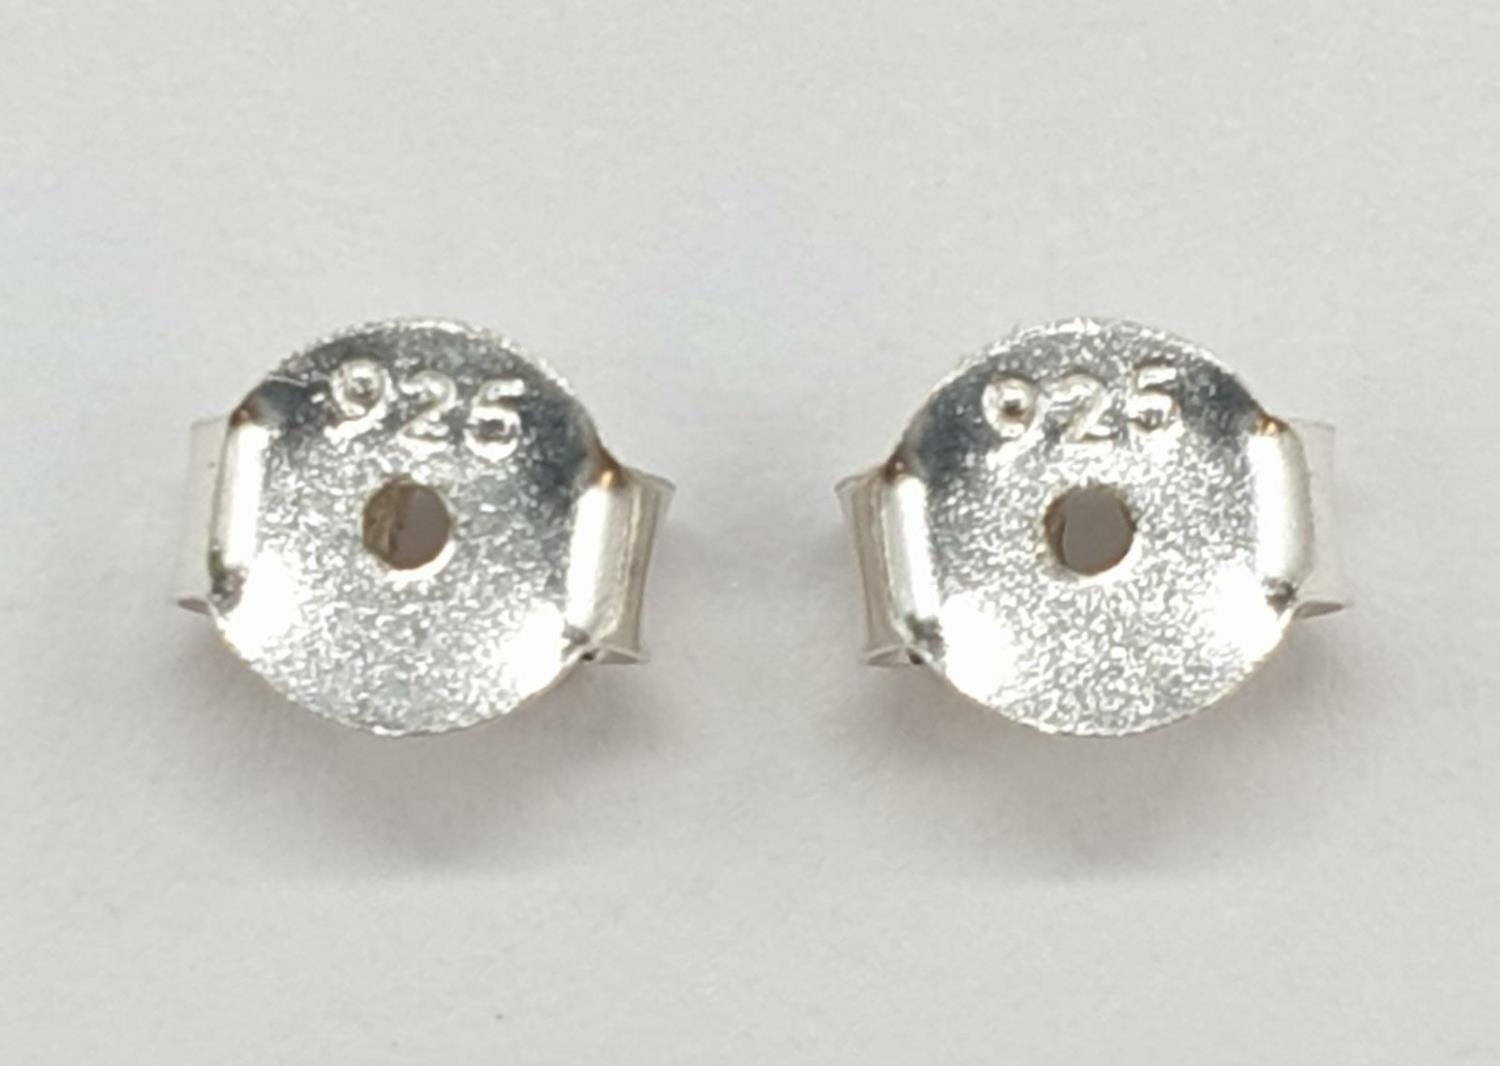 1.80cts White Moissanite Stone Stud Earrings in Sterling Silver with butterfly clips. Weight 1.63 - Image 3 of 3